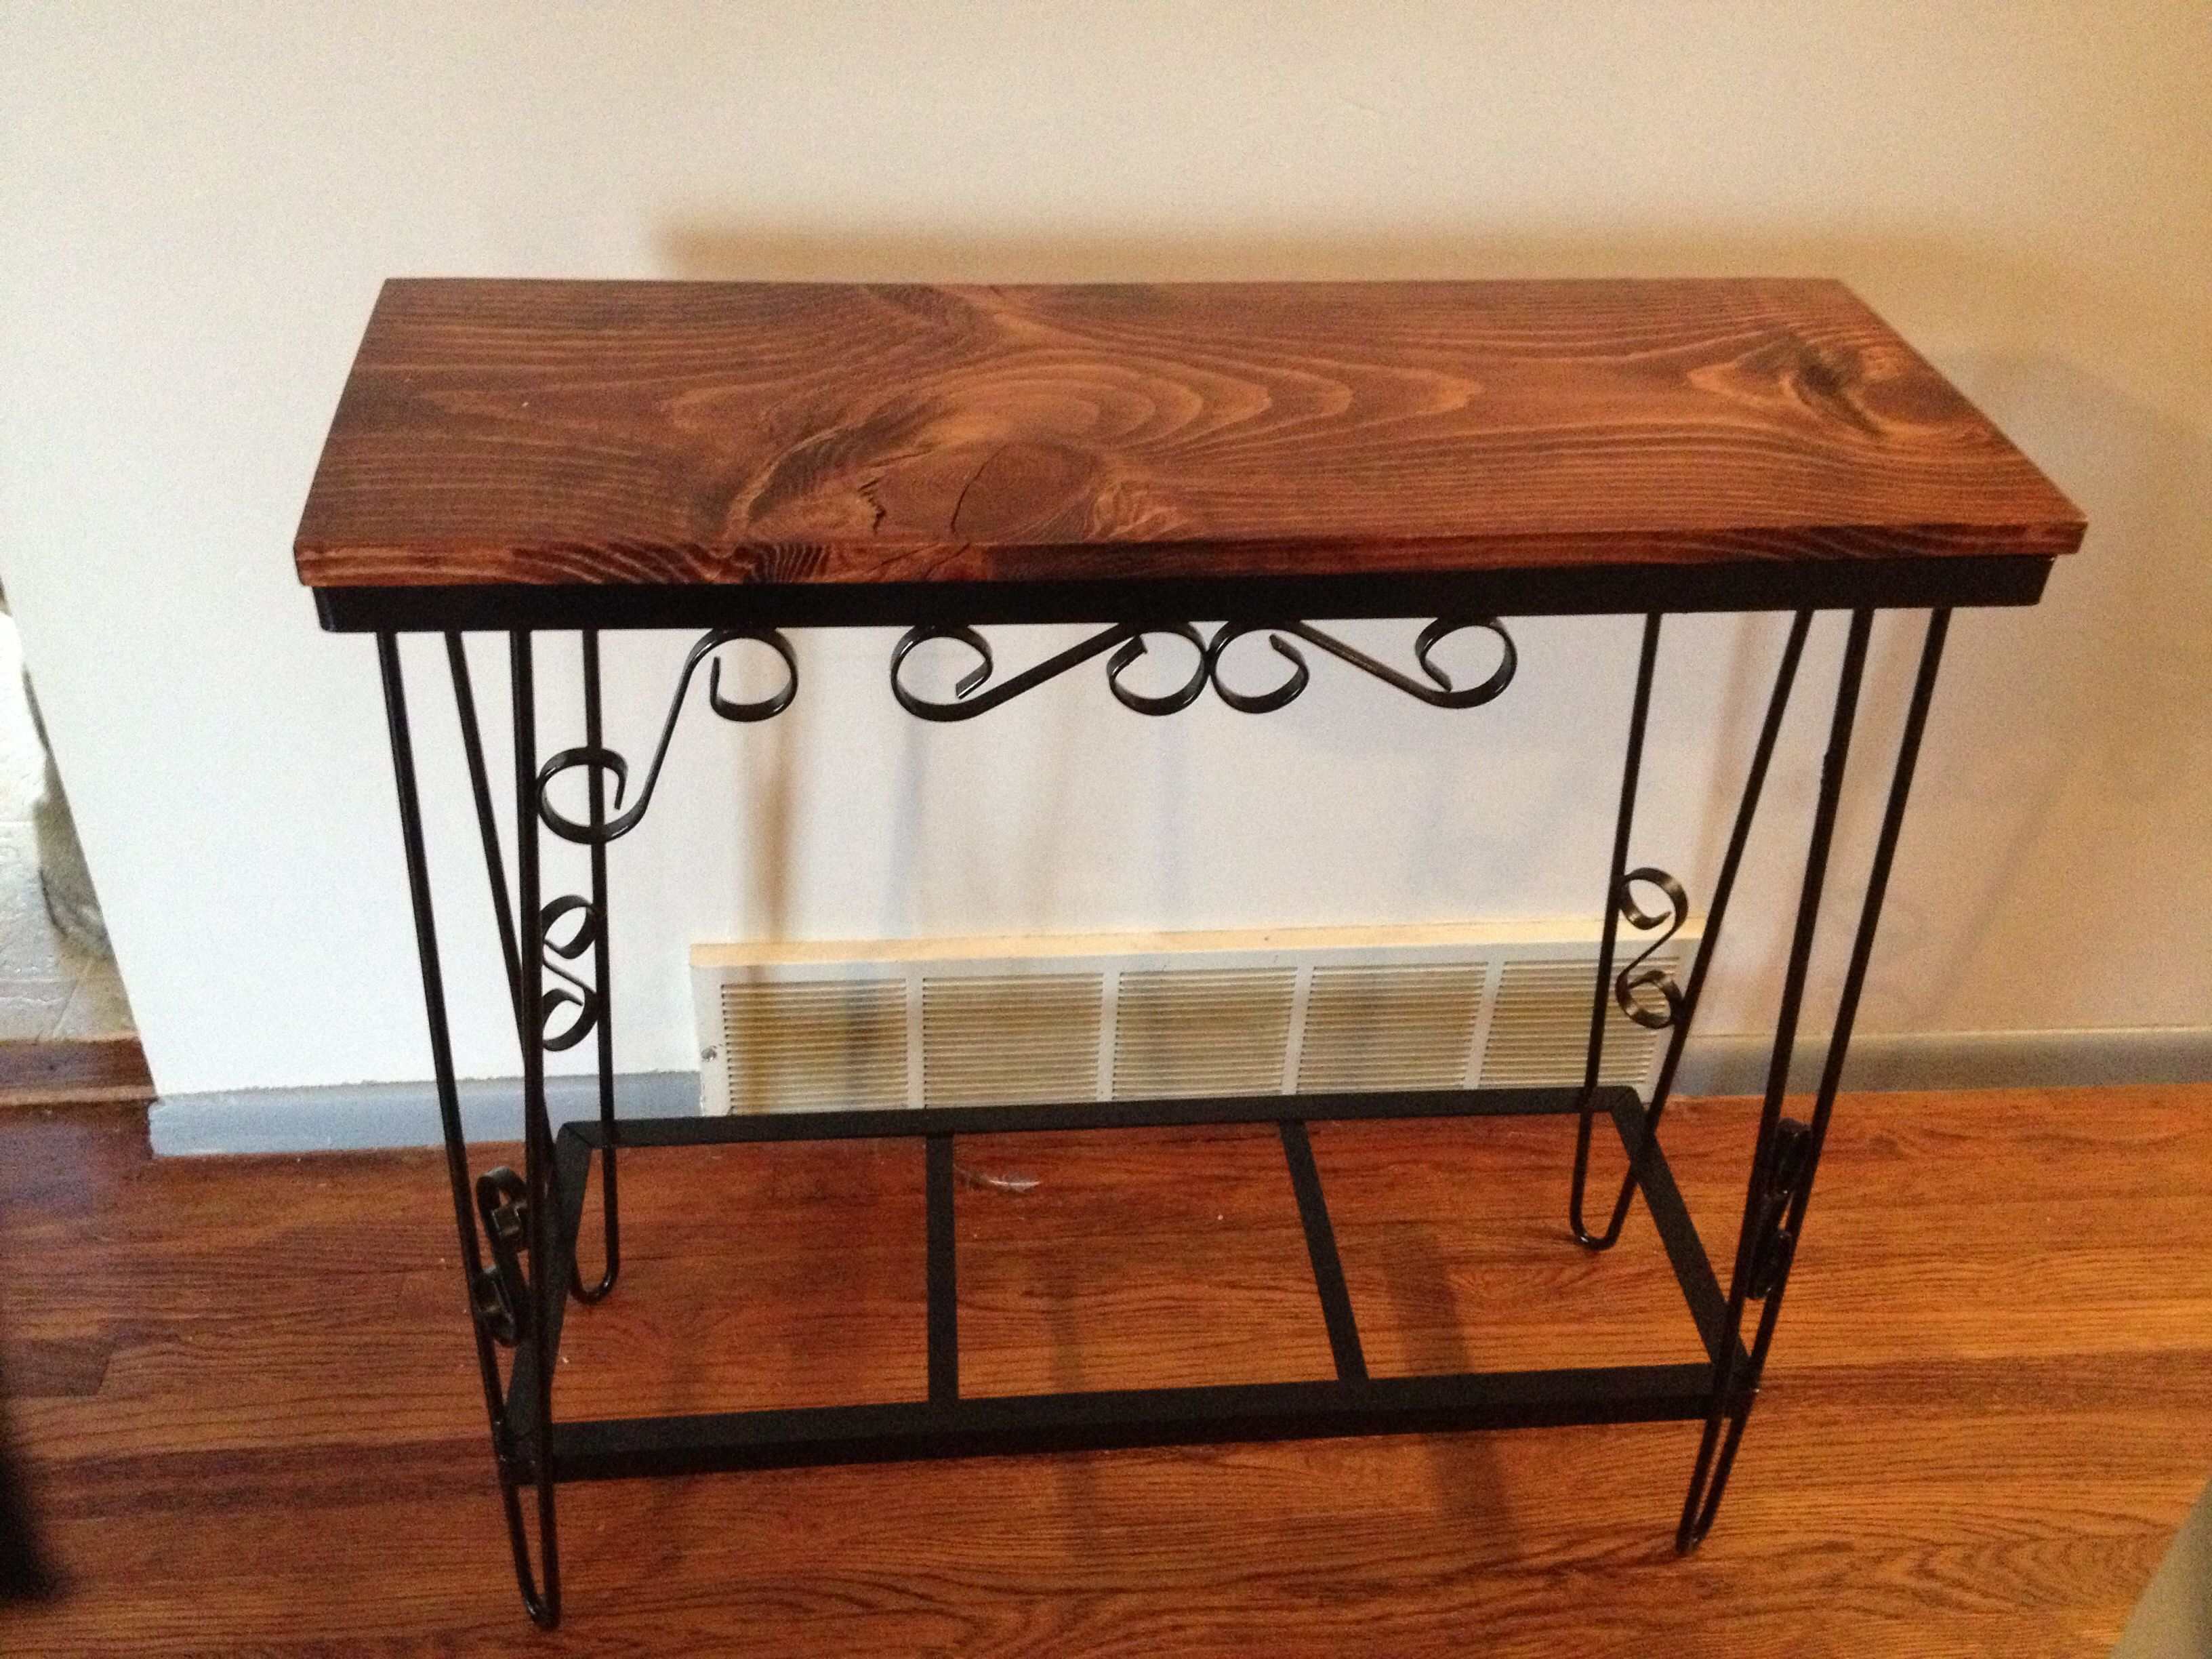 Entry way table made from fish tank stand